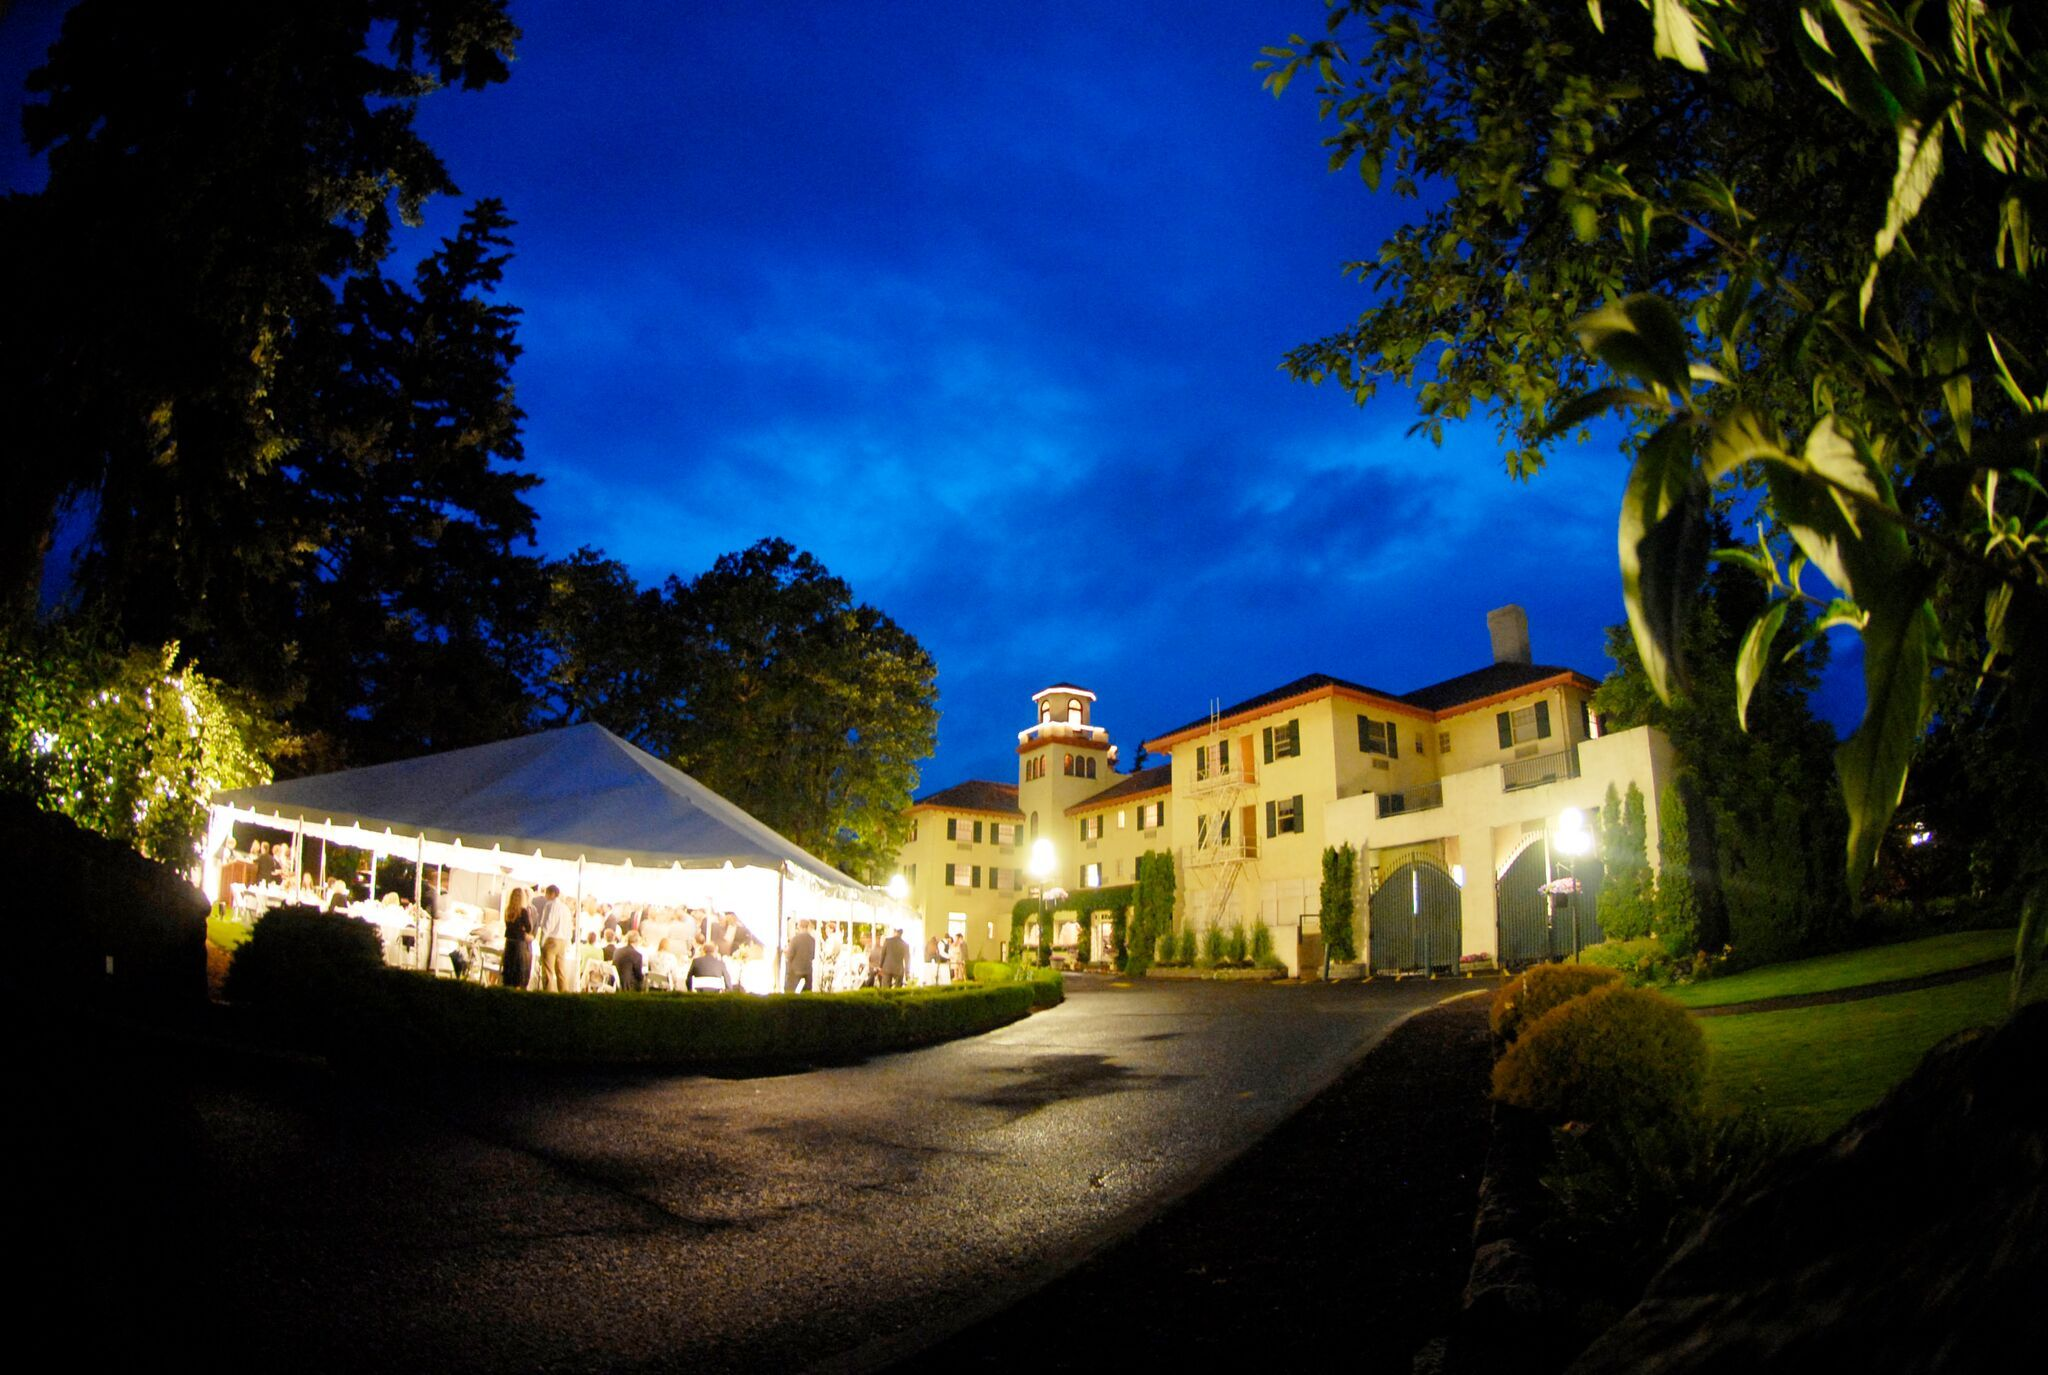 A stunning tent wedding on the front lawn at the columbia